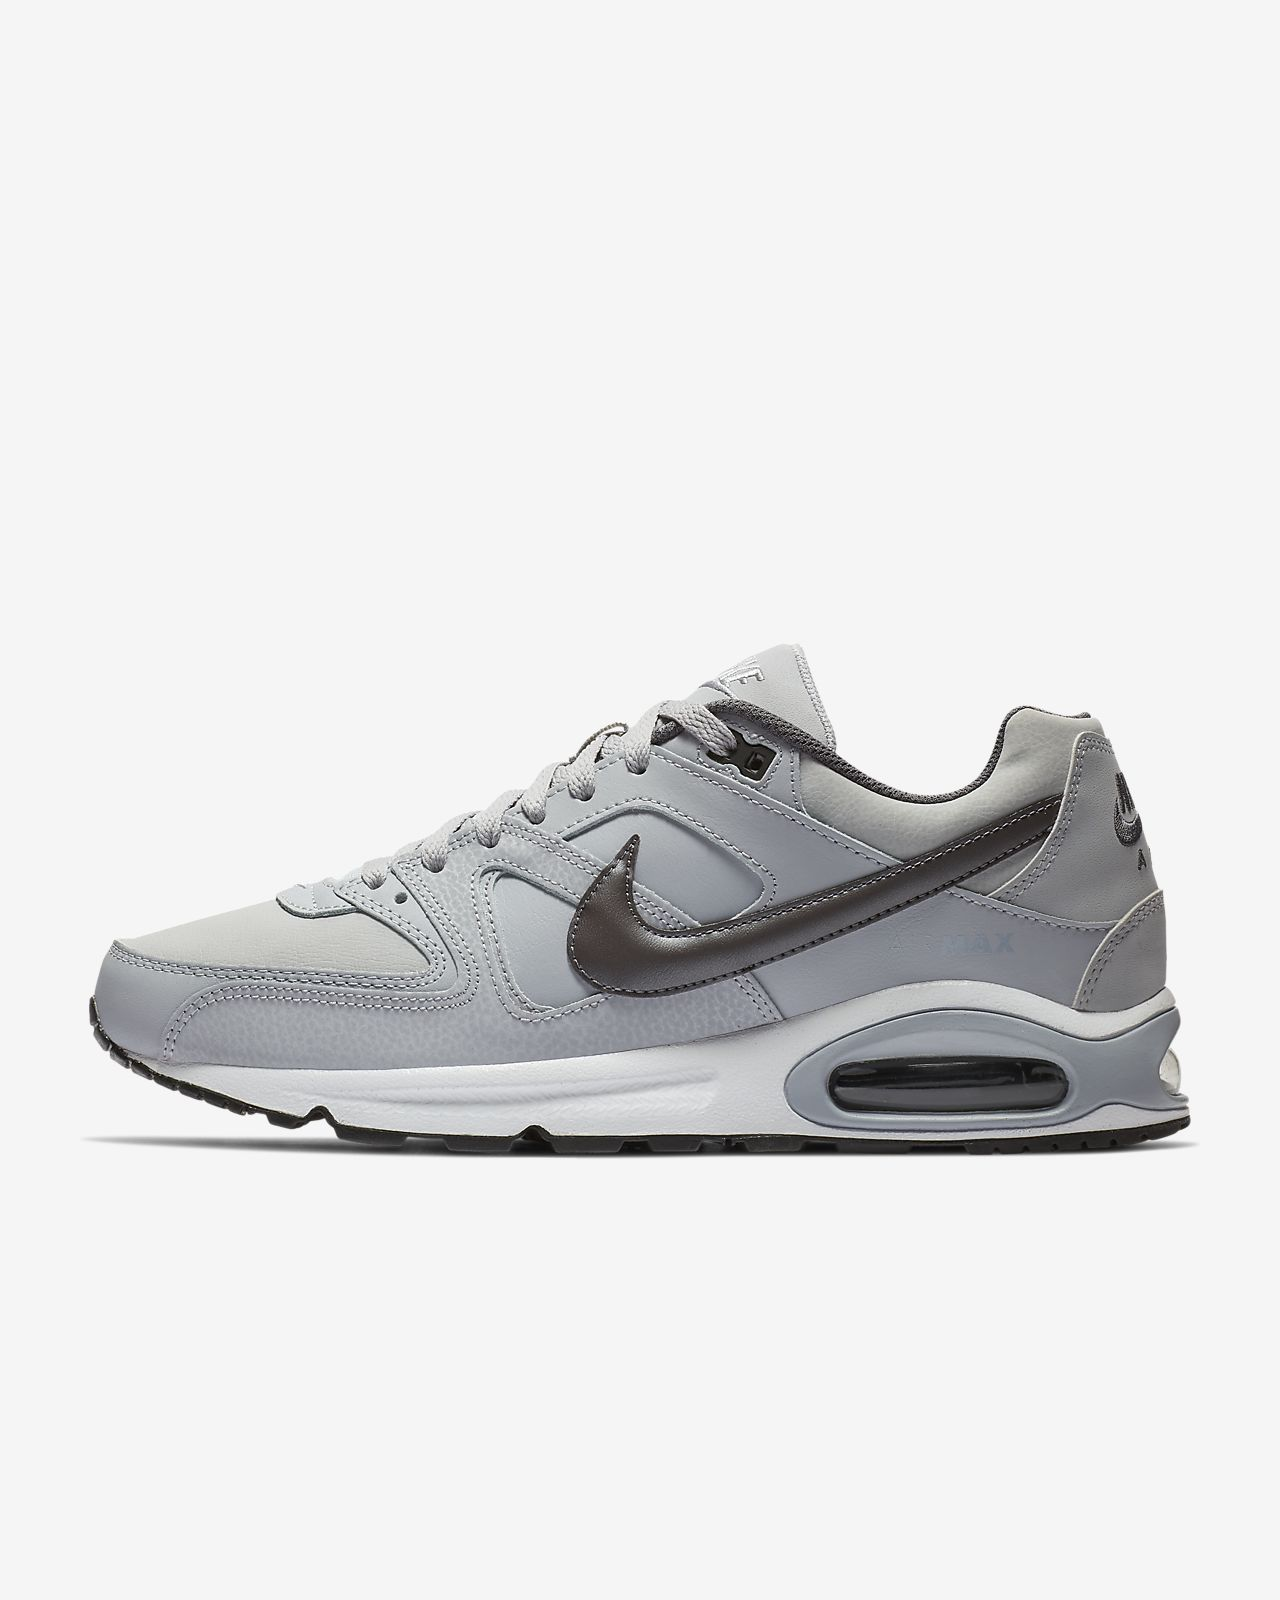 cc37faf90a84 Nike Air Max Command Men s Shoe. Nike.com NO